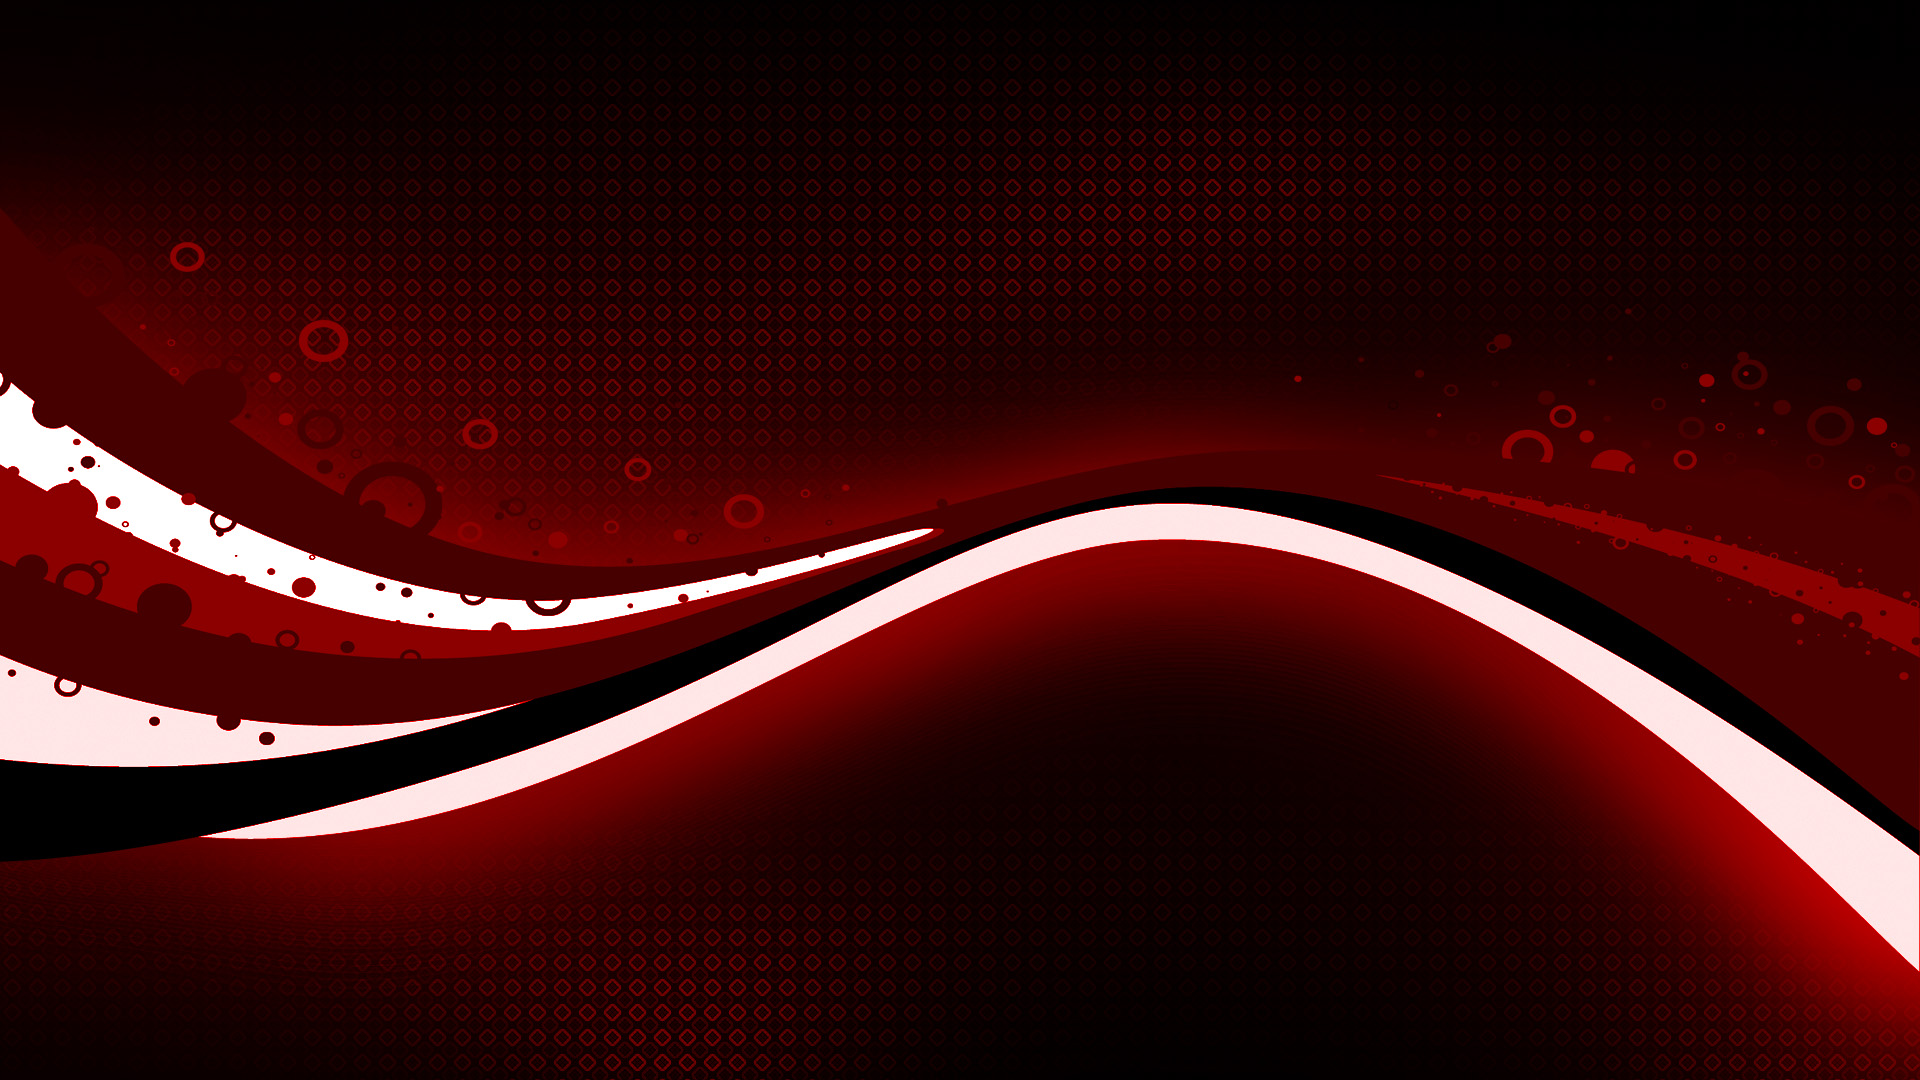 This is a Red Wave wallpaper. This Red Wave background can be used for your